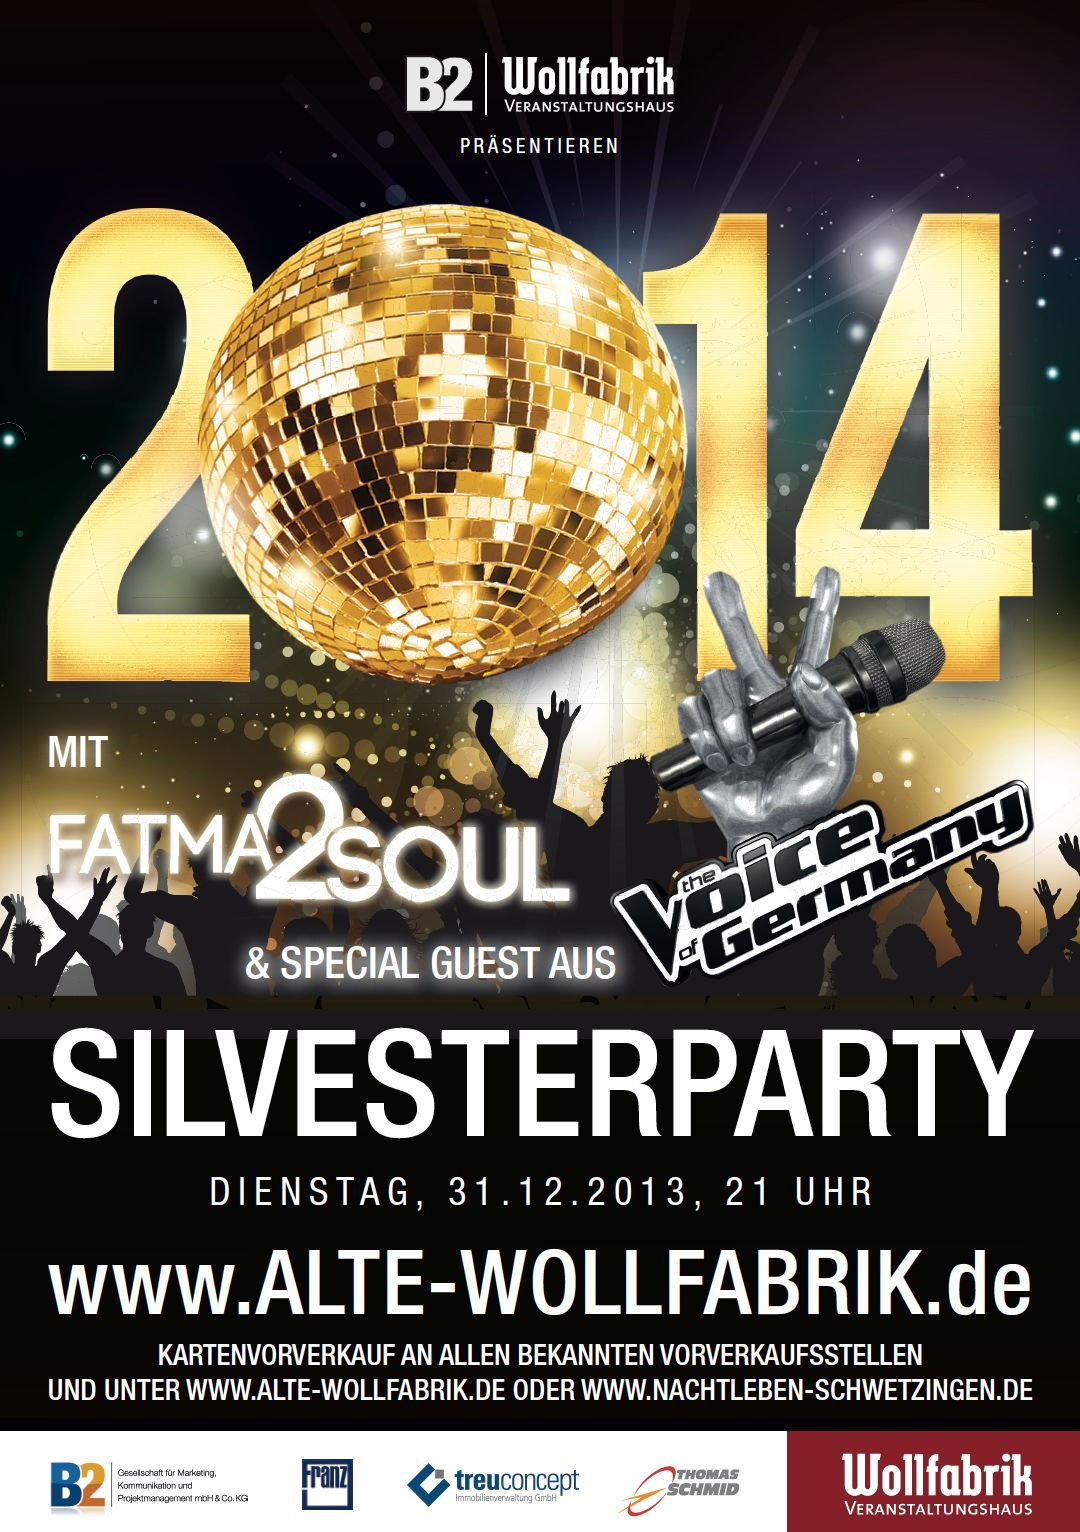 Single silvesterparty stuttgart 2014